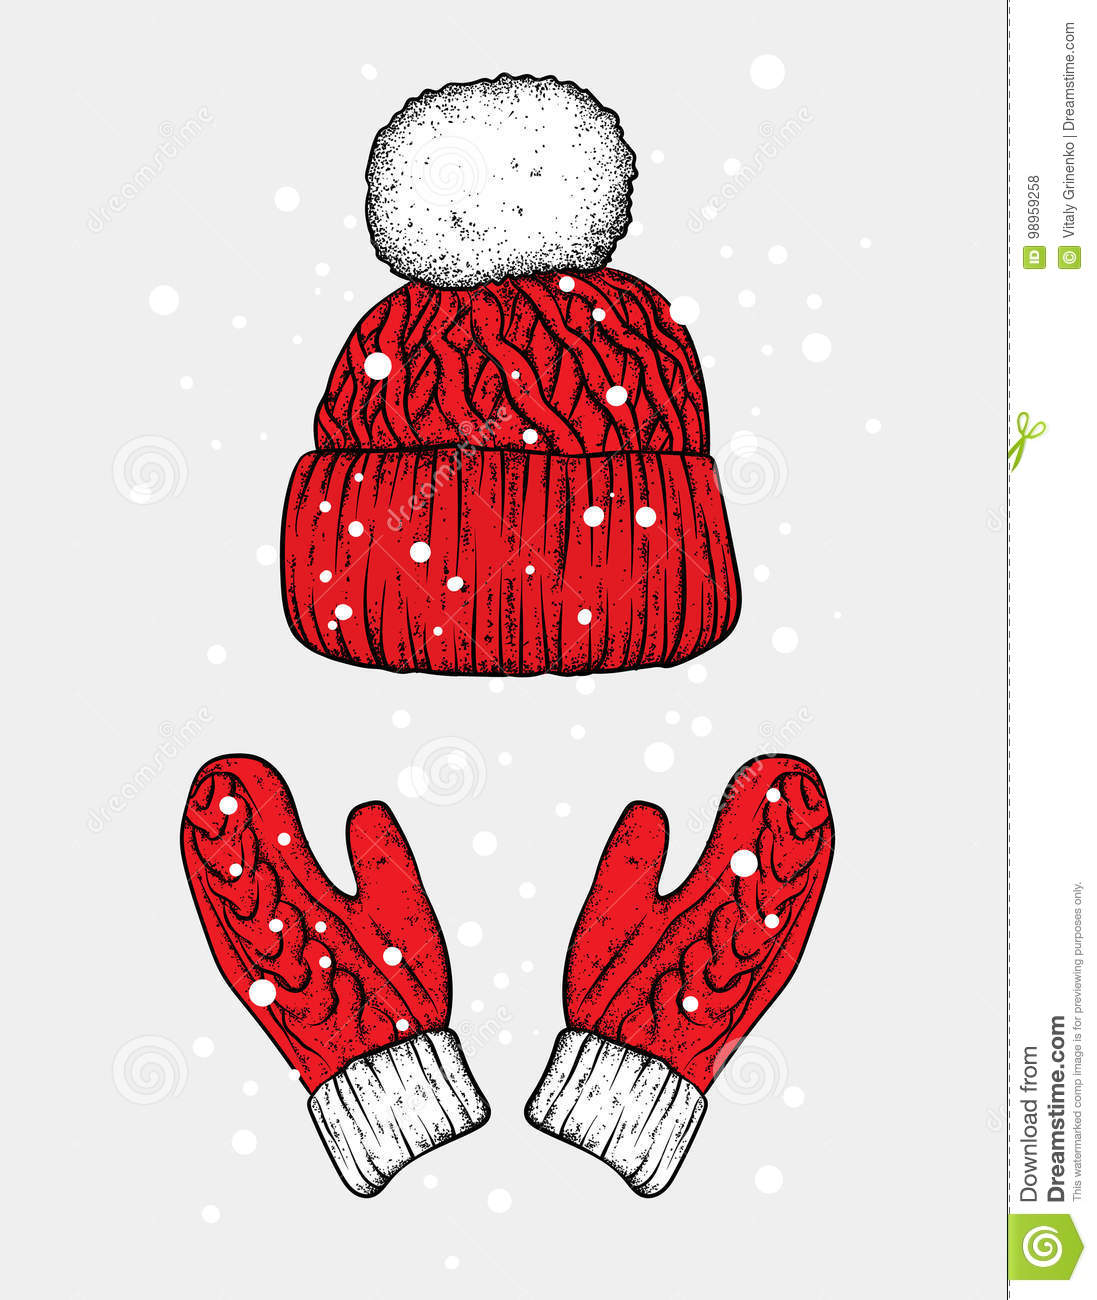 c29d2d82301 Winter hat and gloves. Knitted mittens. Vector illustration for a postcard  or a poster